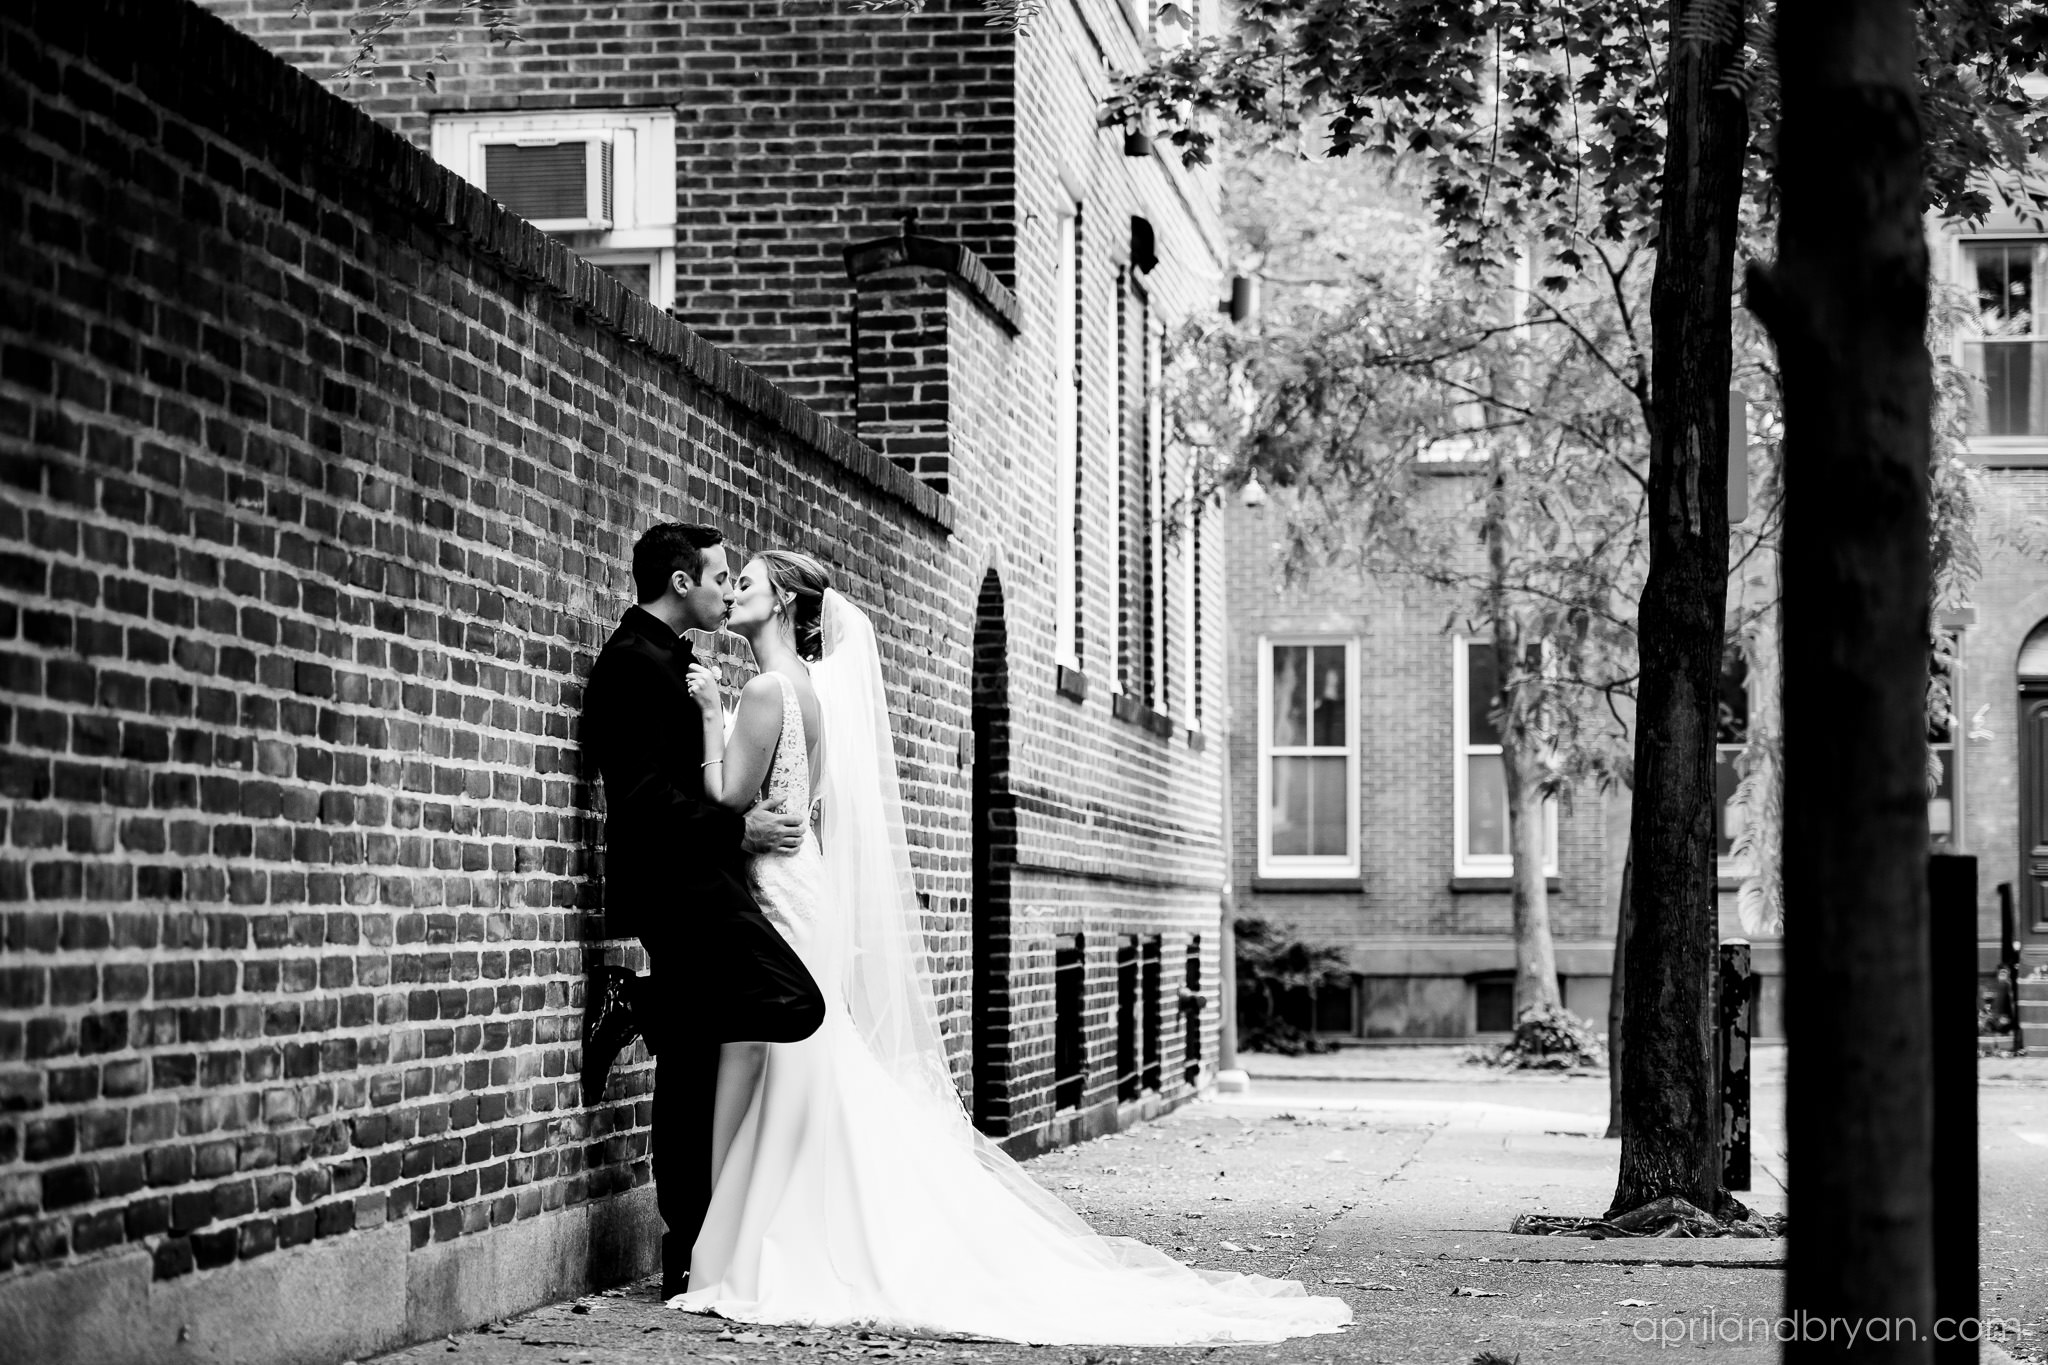 Husband and bride share a kiss on the streets outside of the frANKLIN institute of Philadelphia. Shot by April & Bryan Photography. Featured on Dream Weddings.